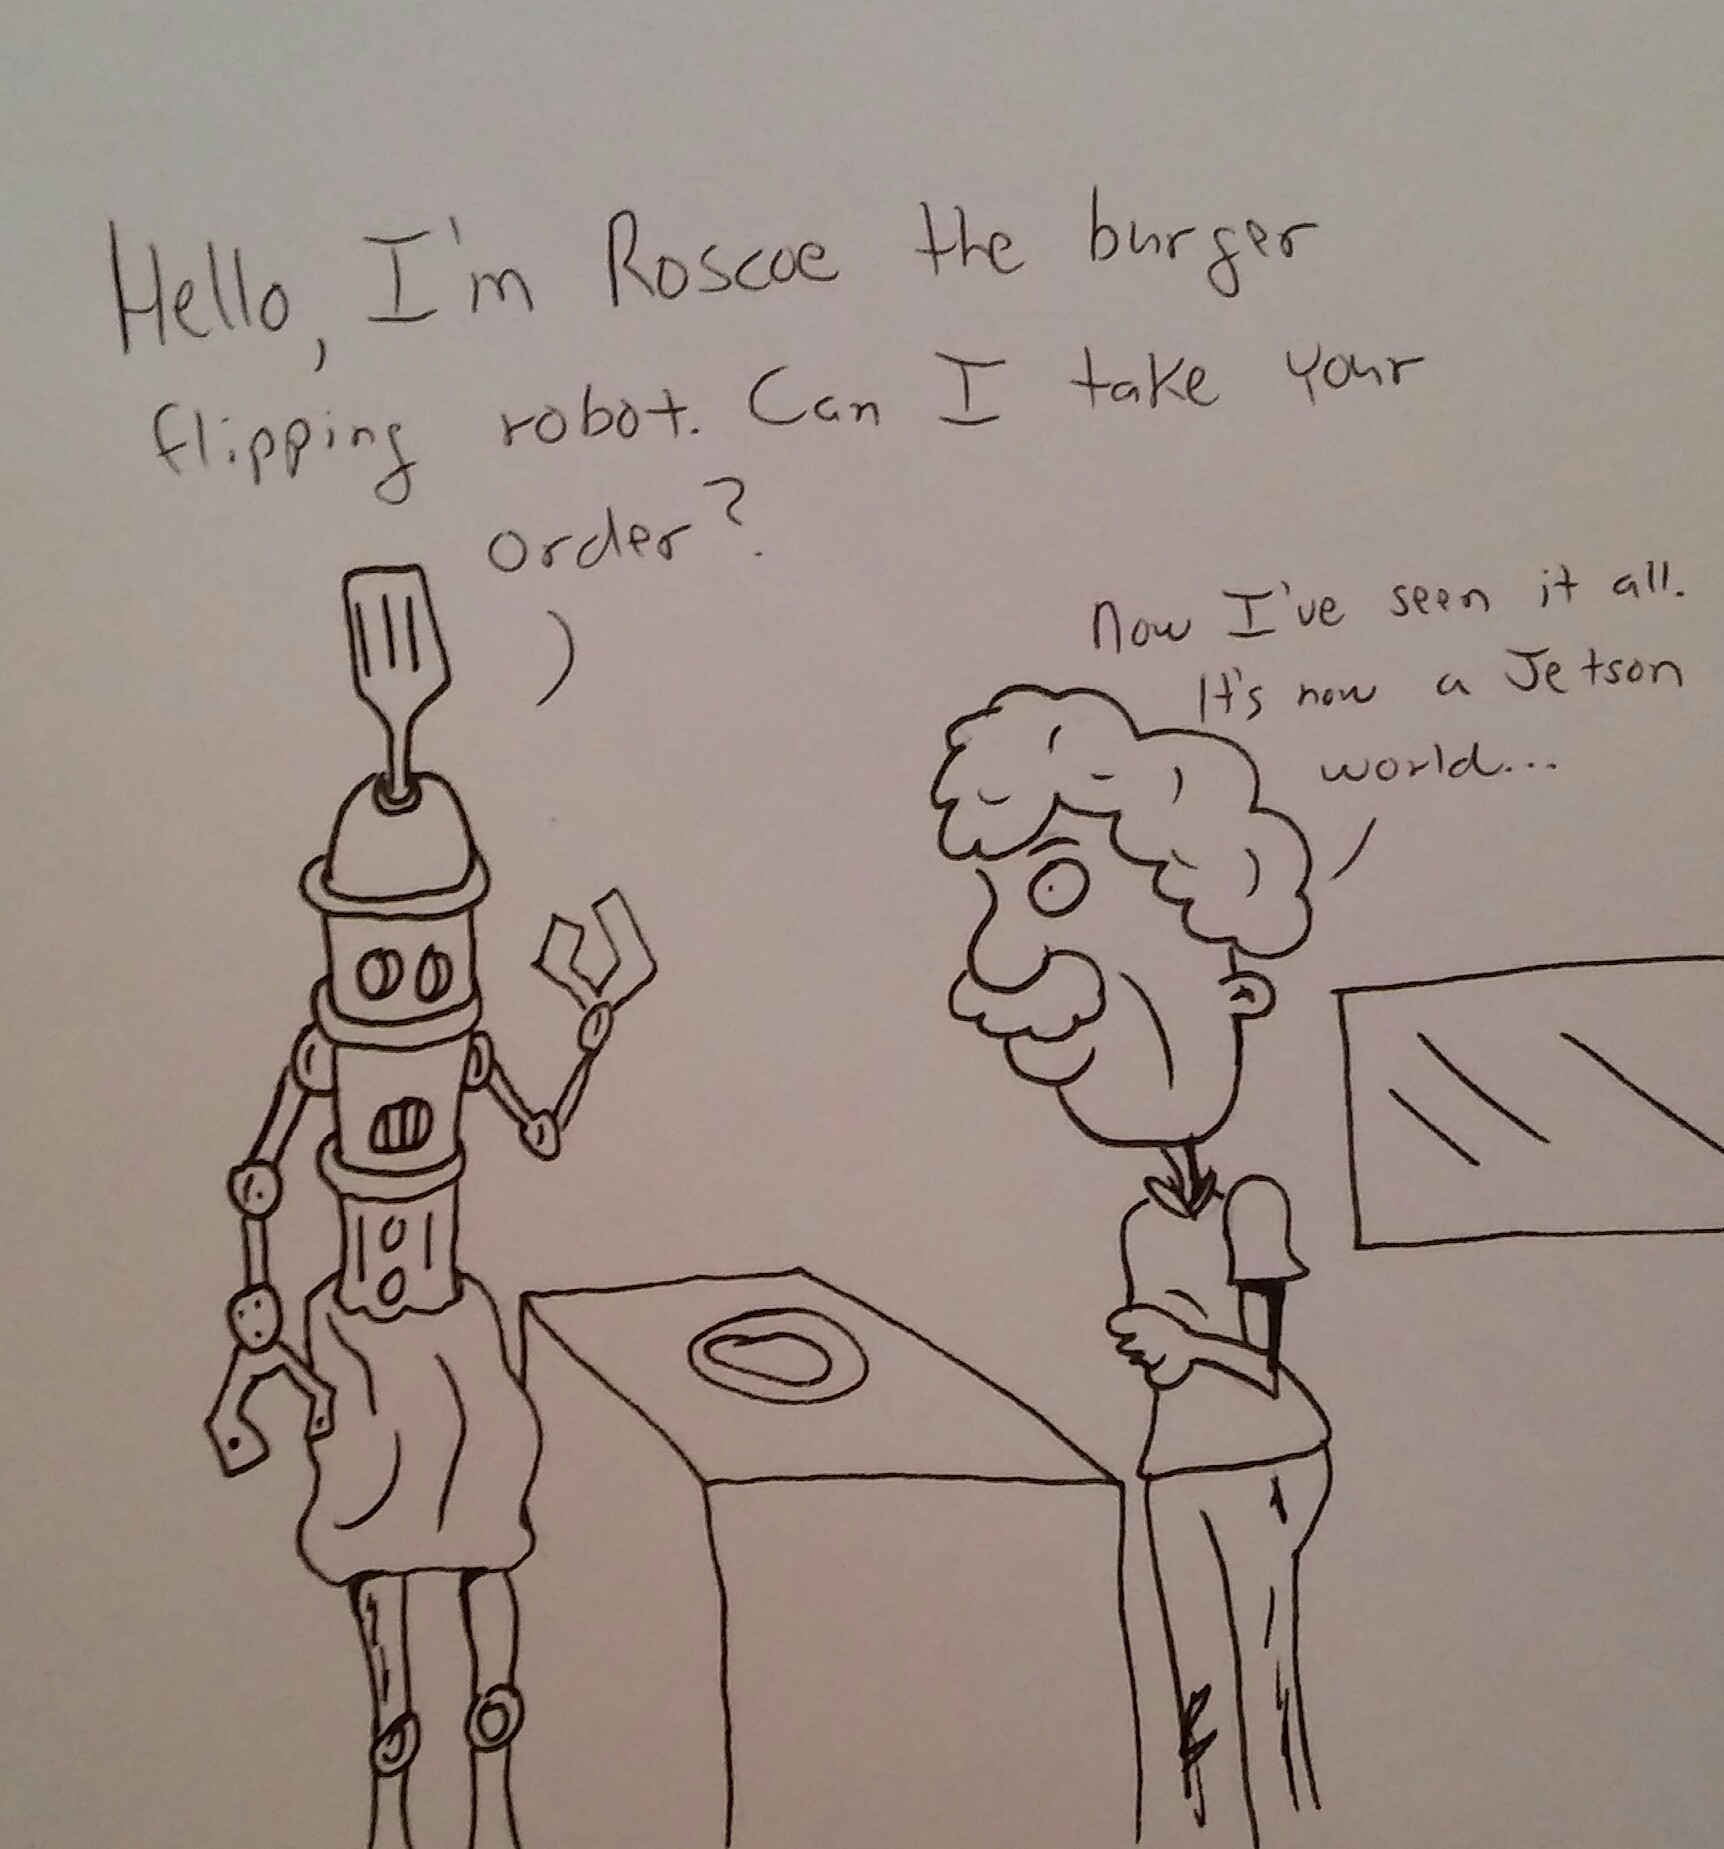 Future of flipping burgers